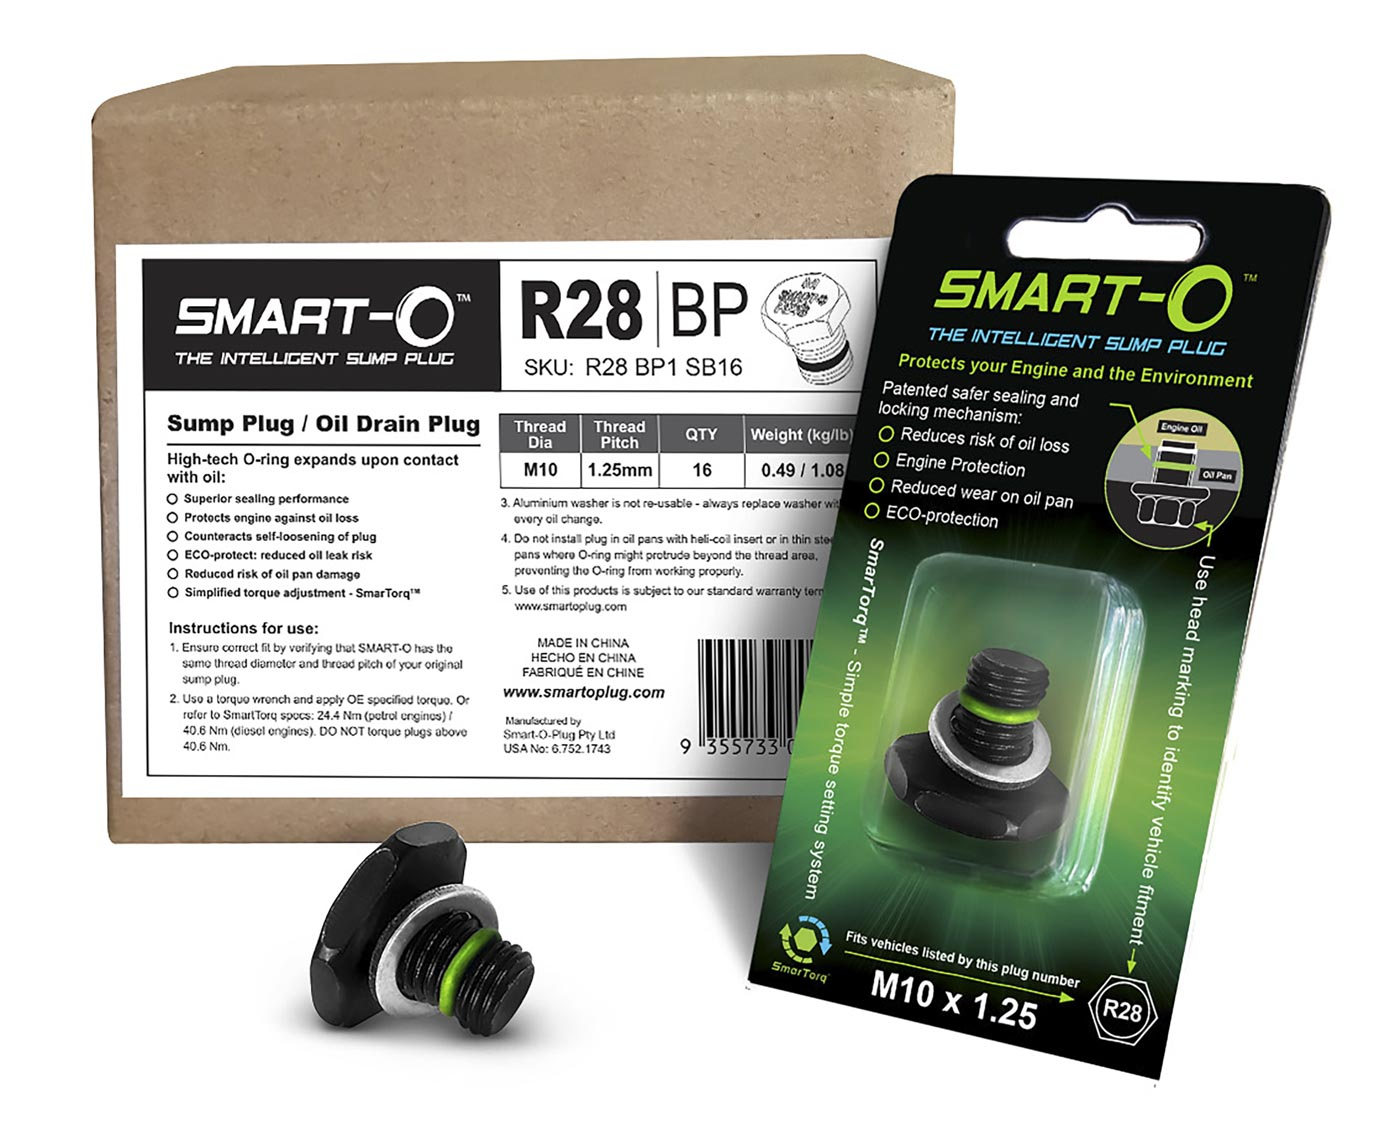 SMART-O Replenishment Box of 16 x R28BP1 Sump Plugs